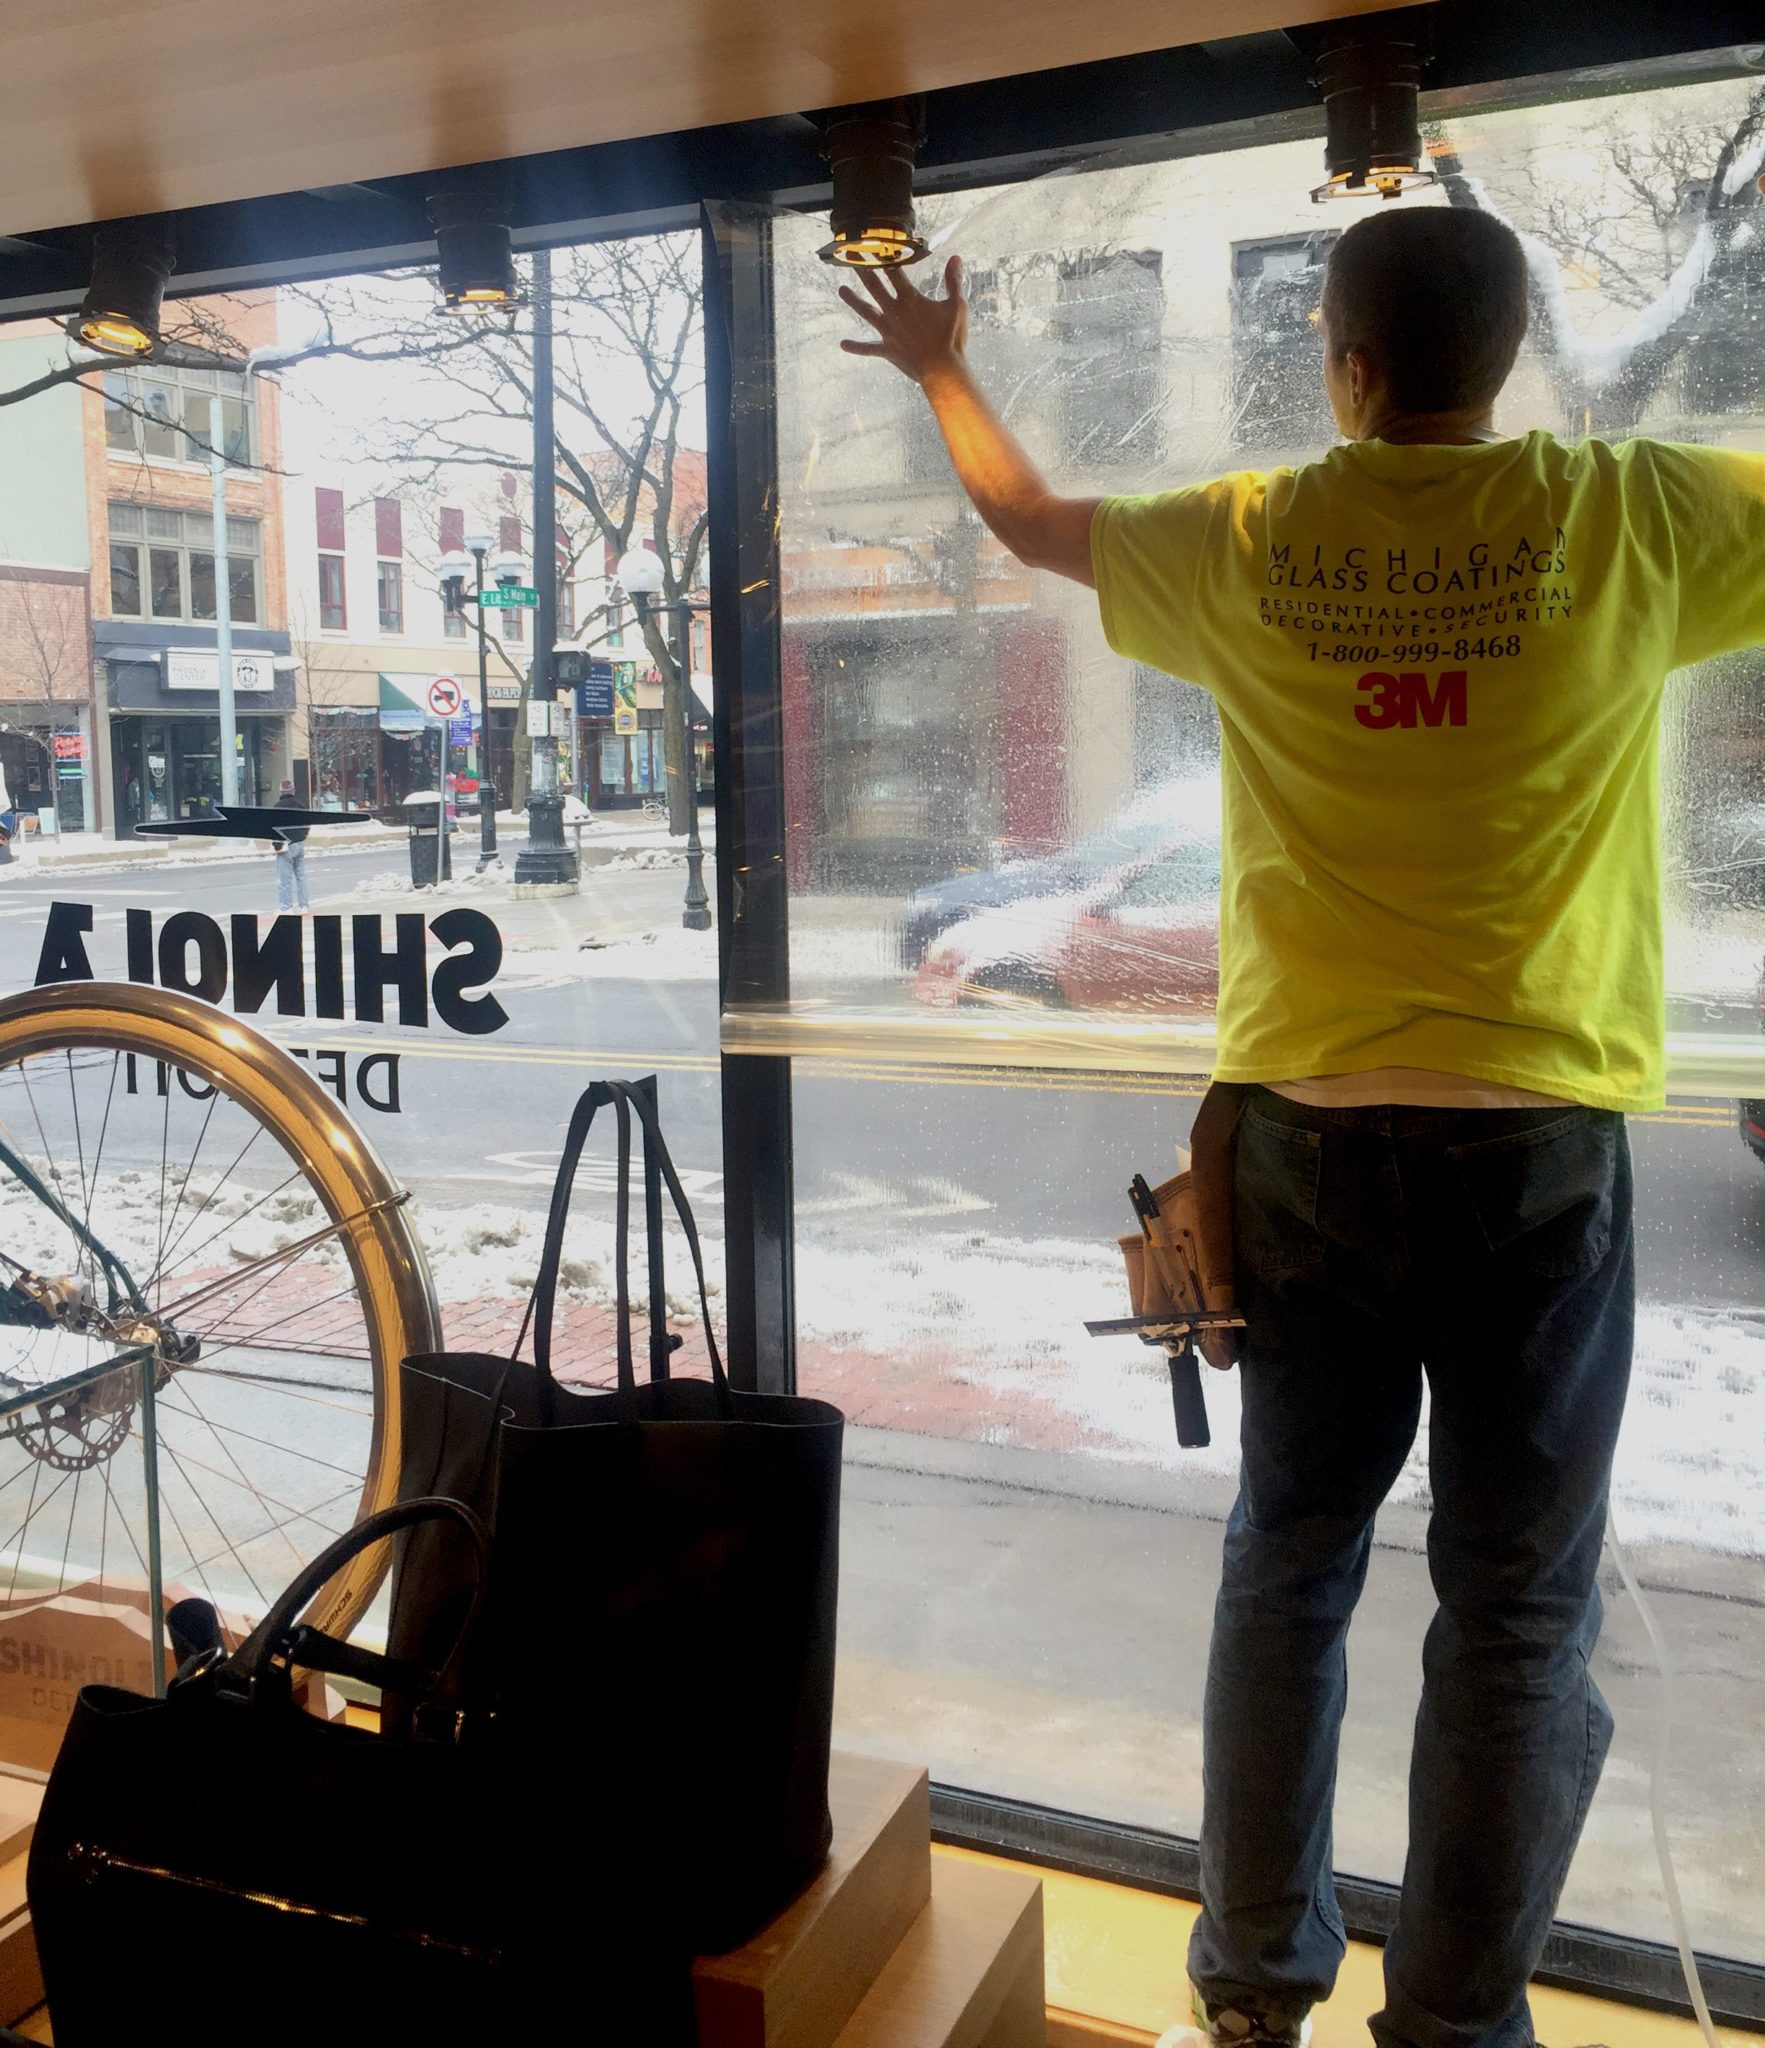 Shinola Gets Safety and security Window Film